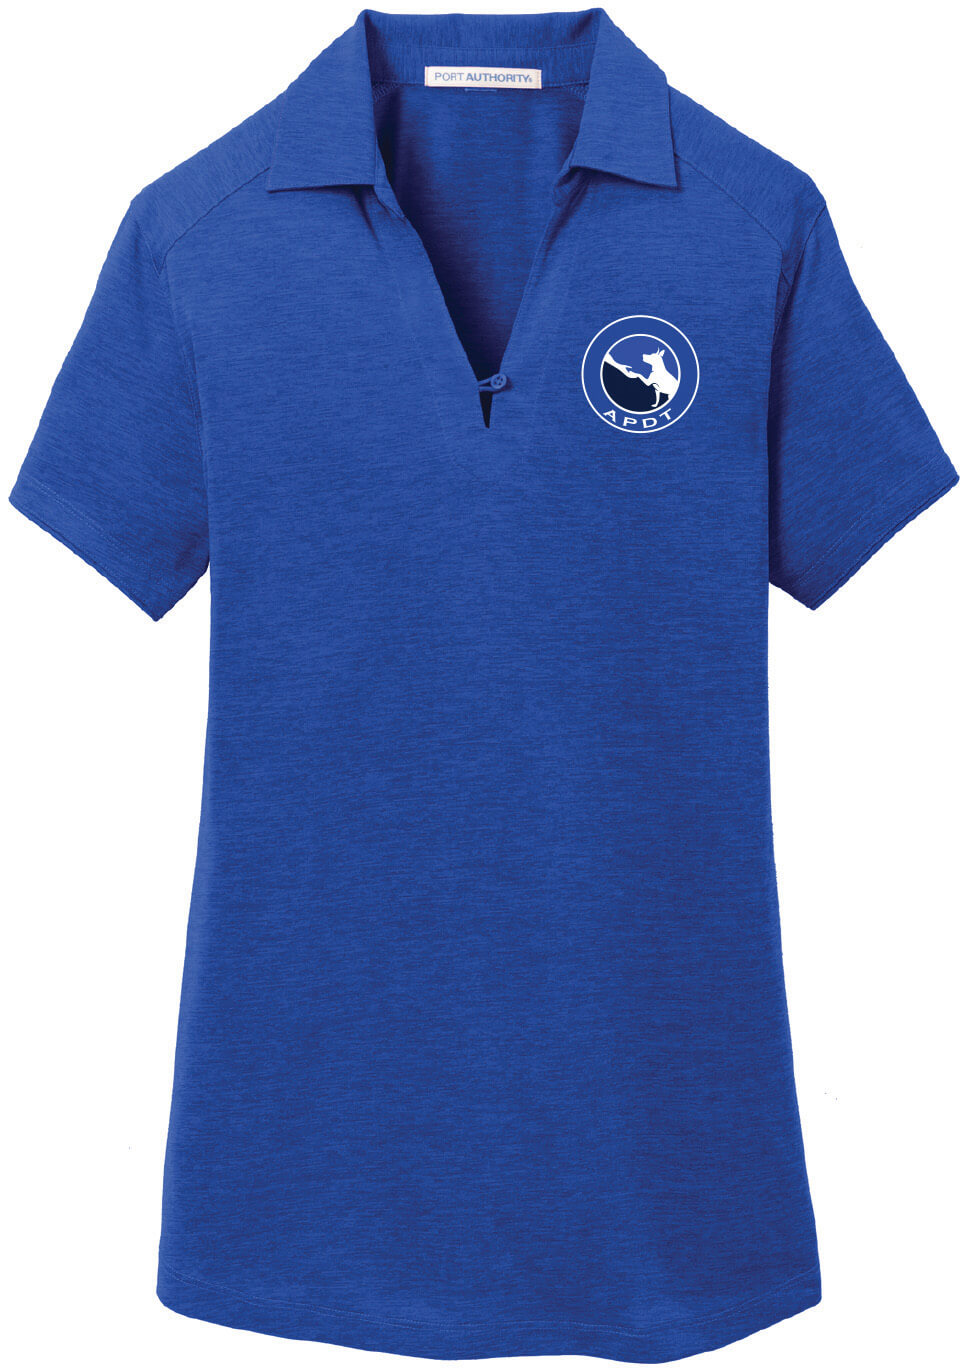 Women's Heather Performance Polo Large